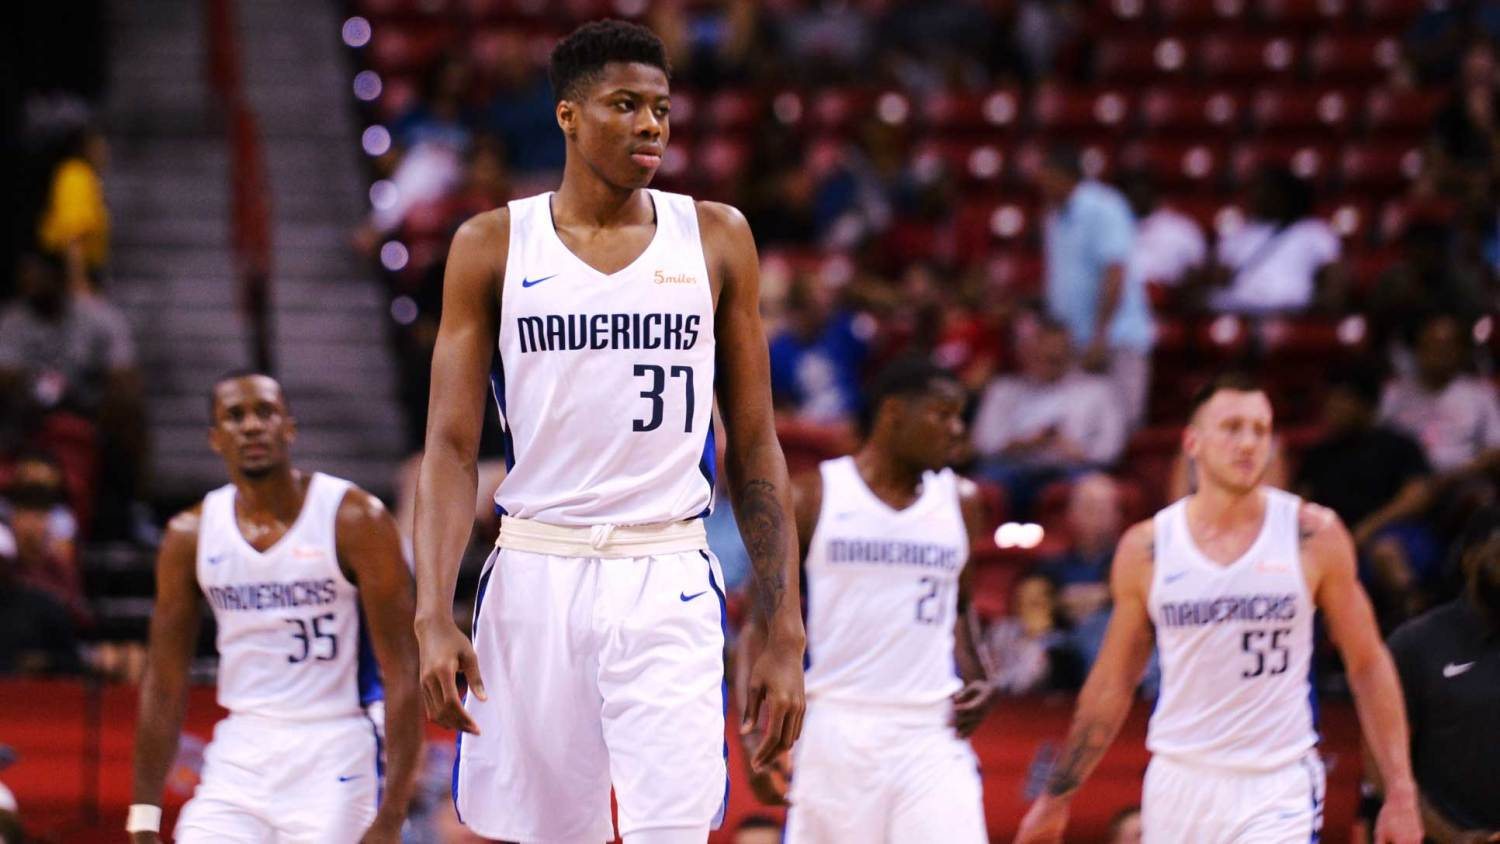 Dallas Mavericks' Kostas Antetokounmpo: 'I told Giannis I'm gonna